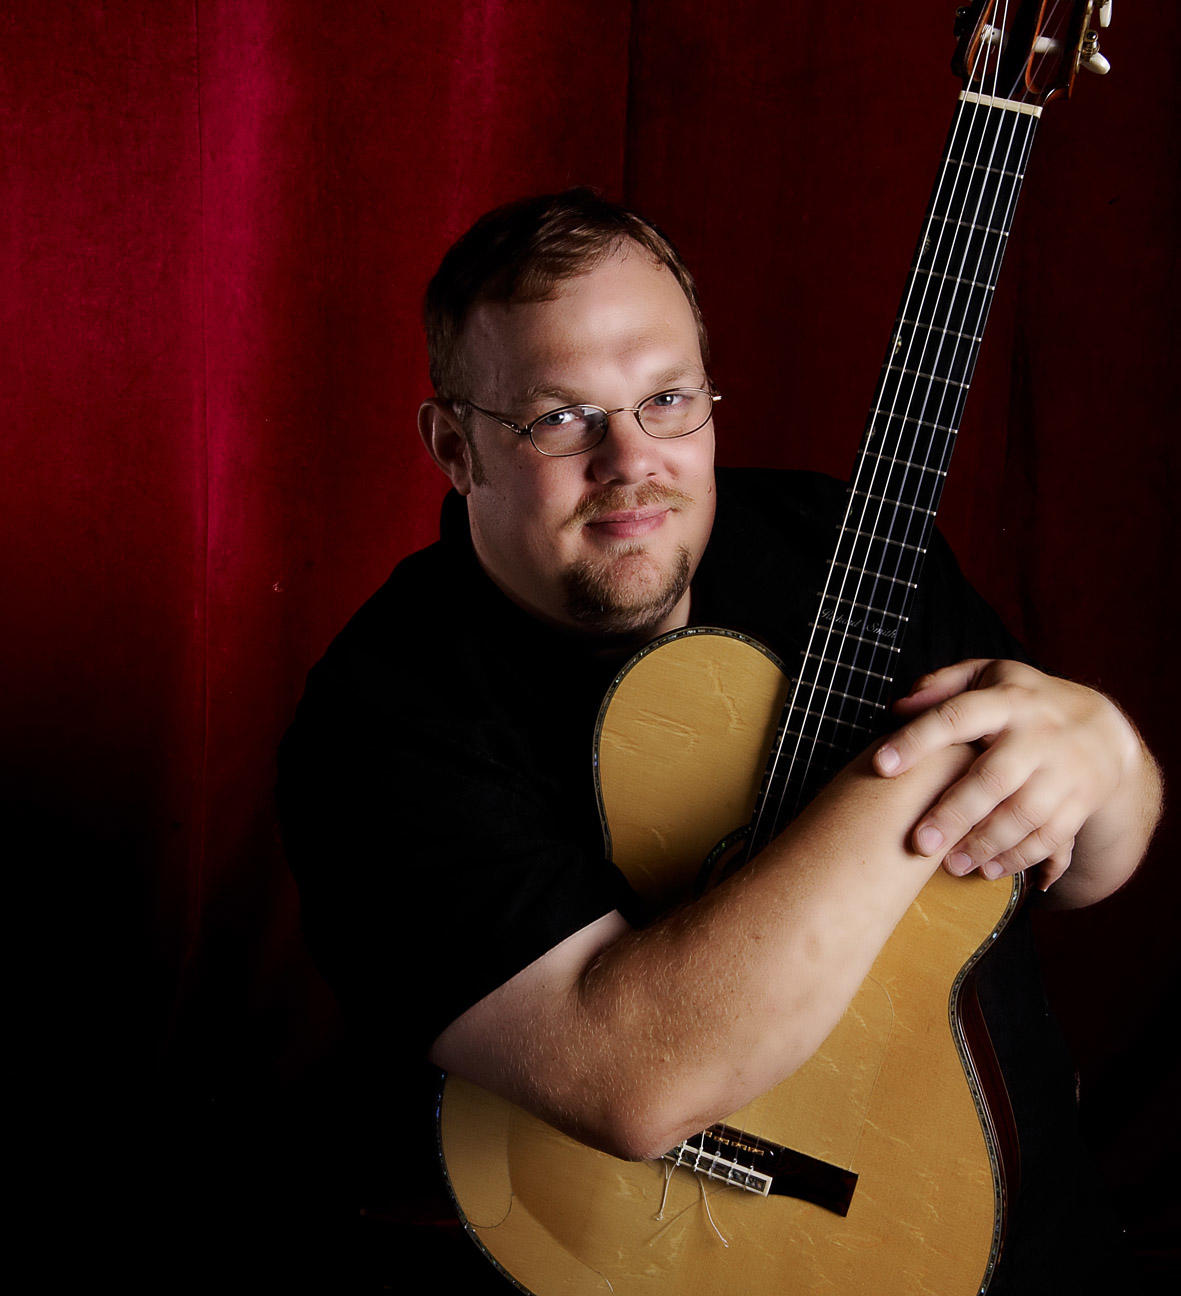 Guitar virtuoso Richard Smith will perform Saturday, July 25 as part of the Gamble Rogers Music Festival concert series. Contributed image